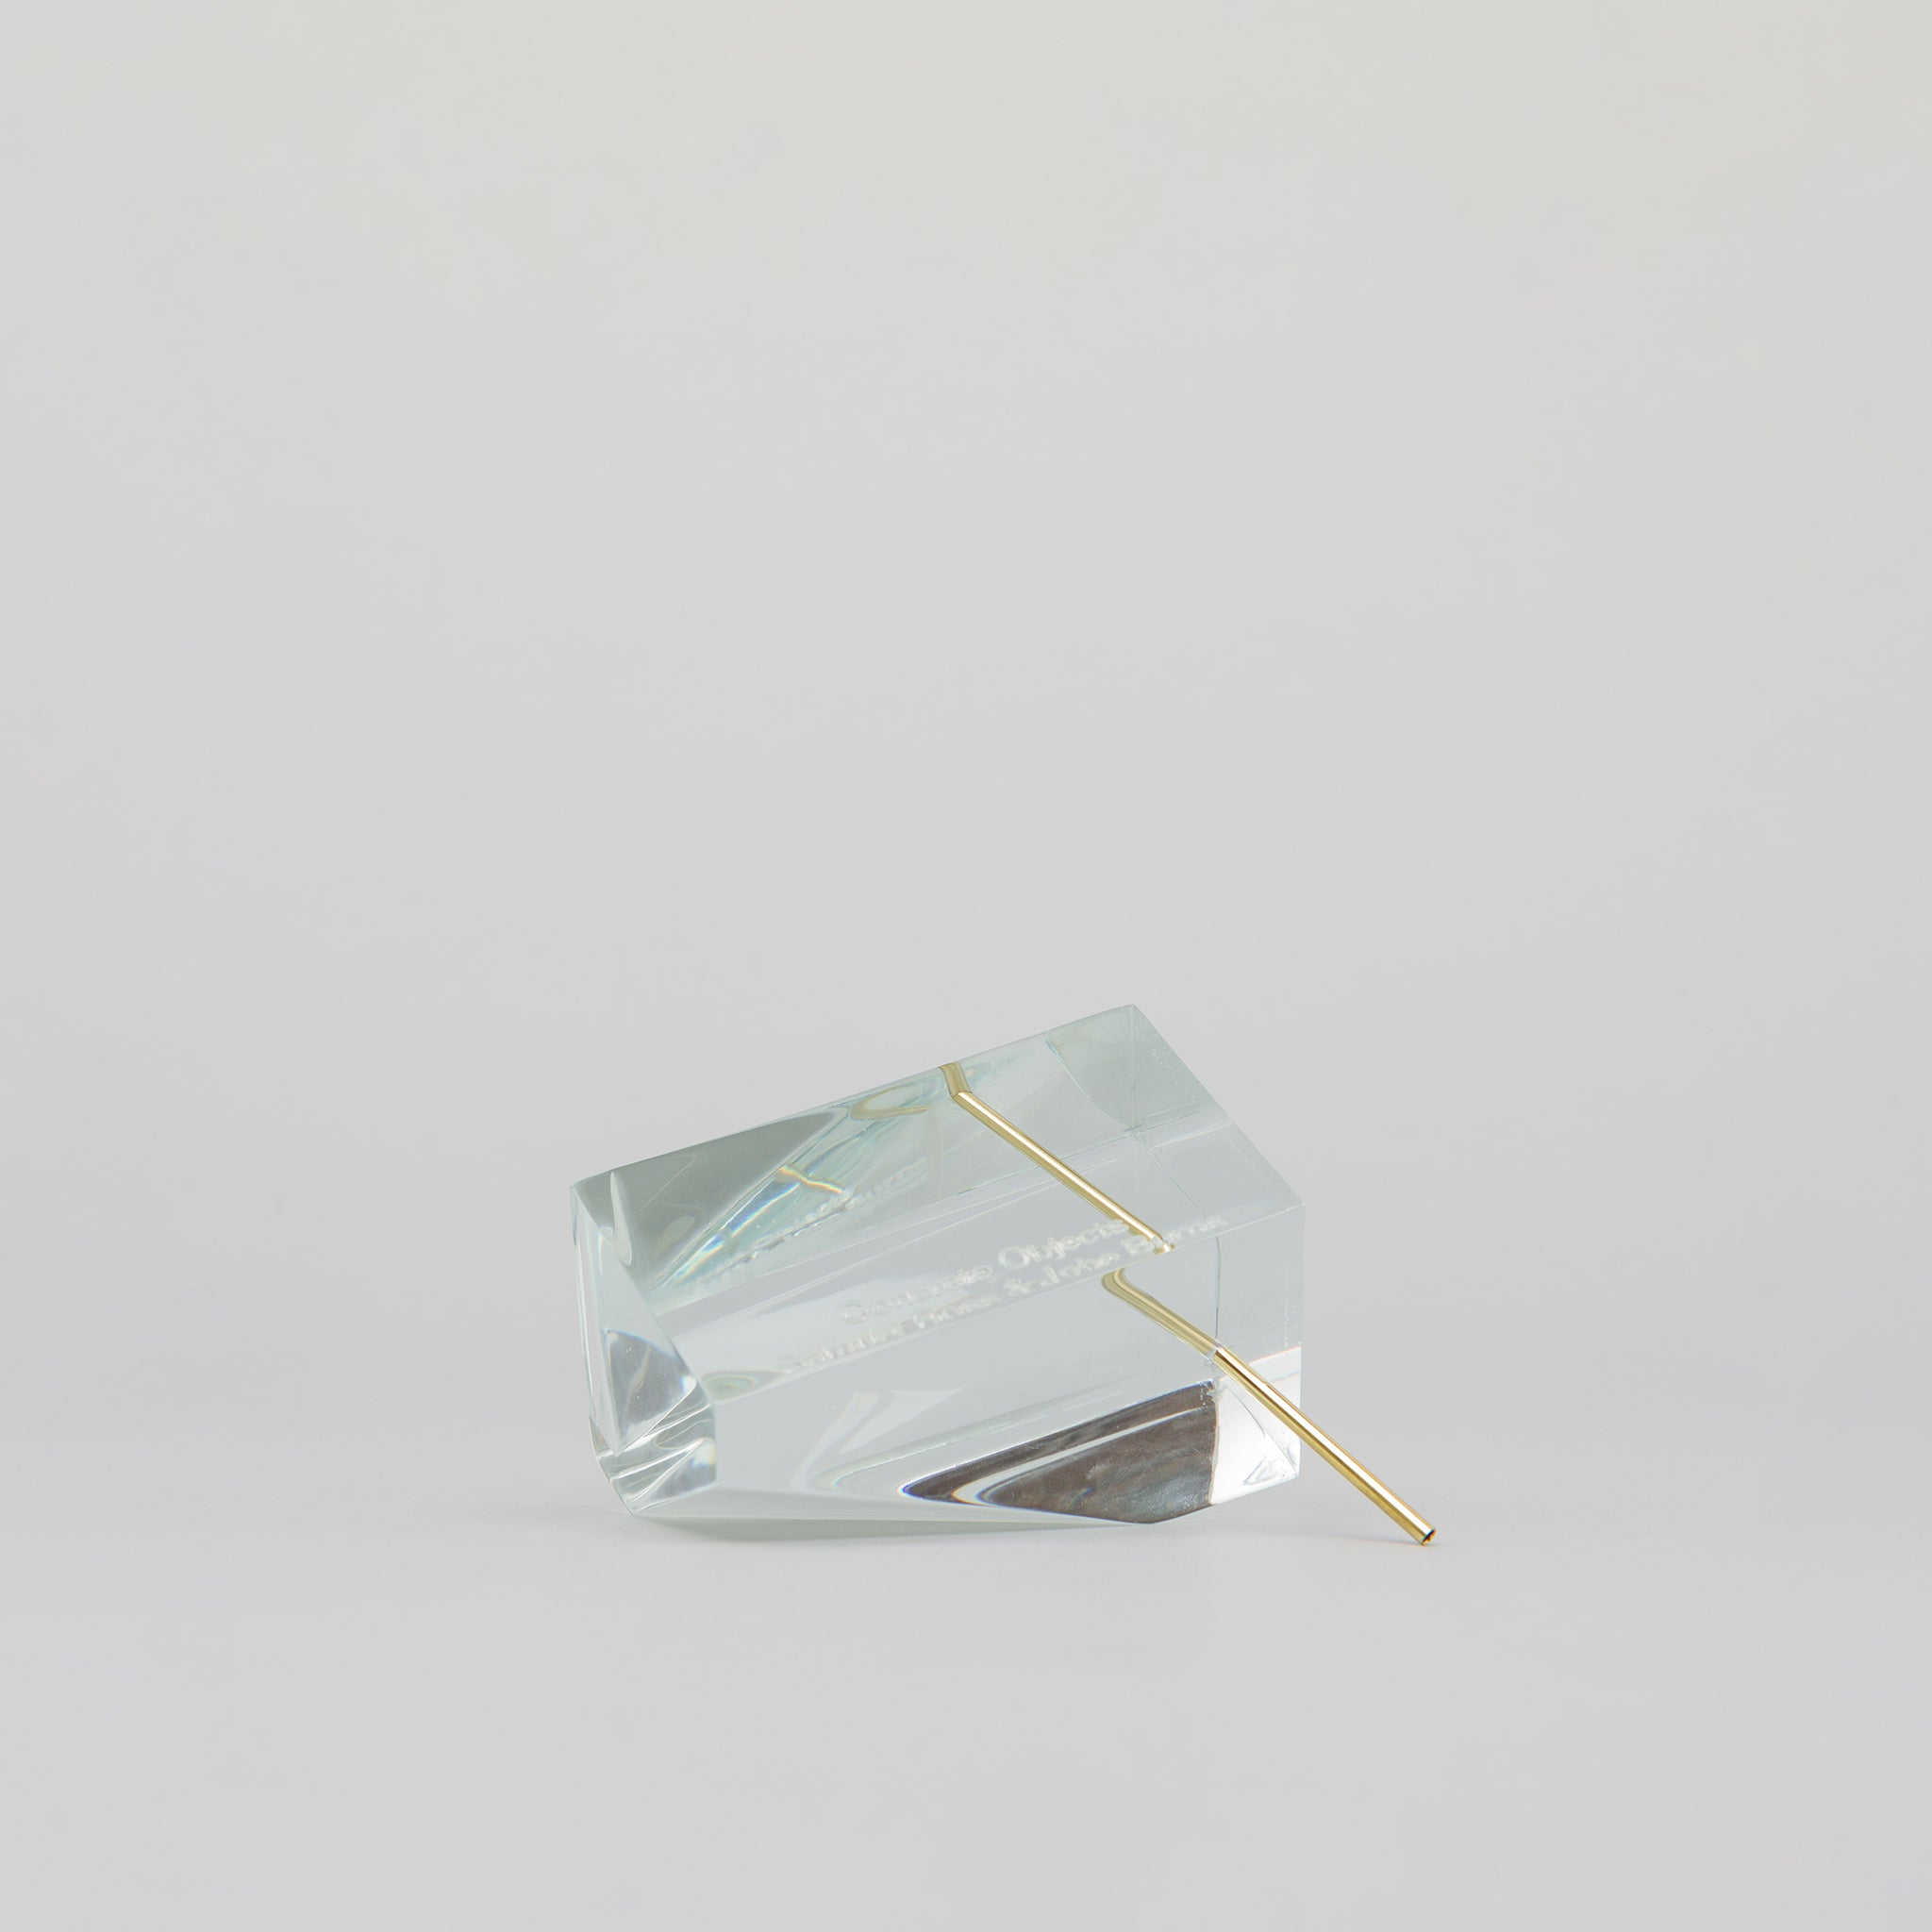 Polygon Incense Burner in Clear